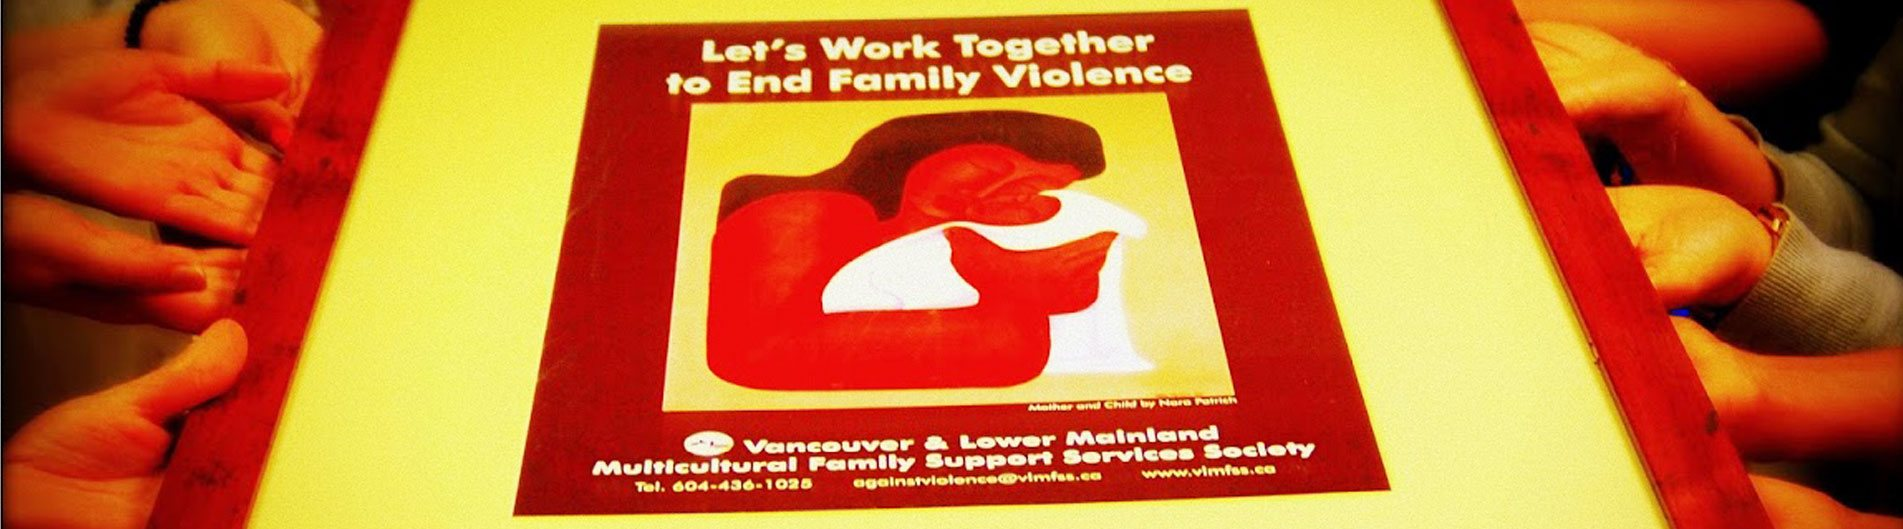 Vancouver & Lower Mainland Multicultural Family Support Services Society